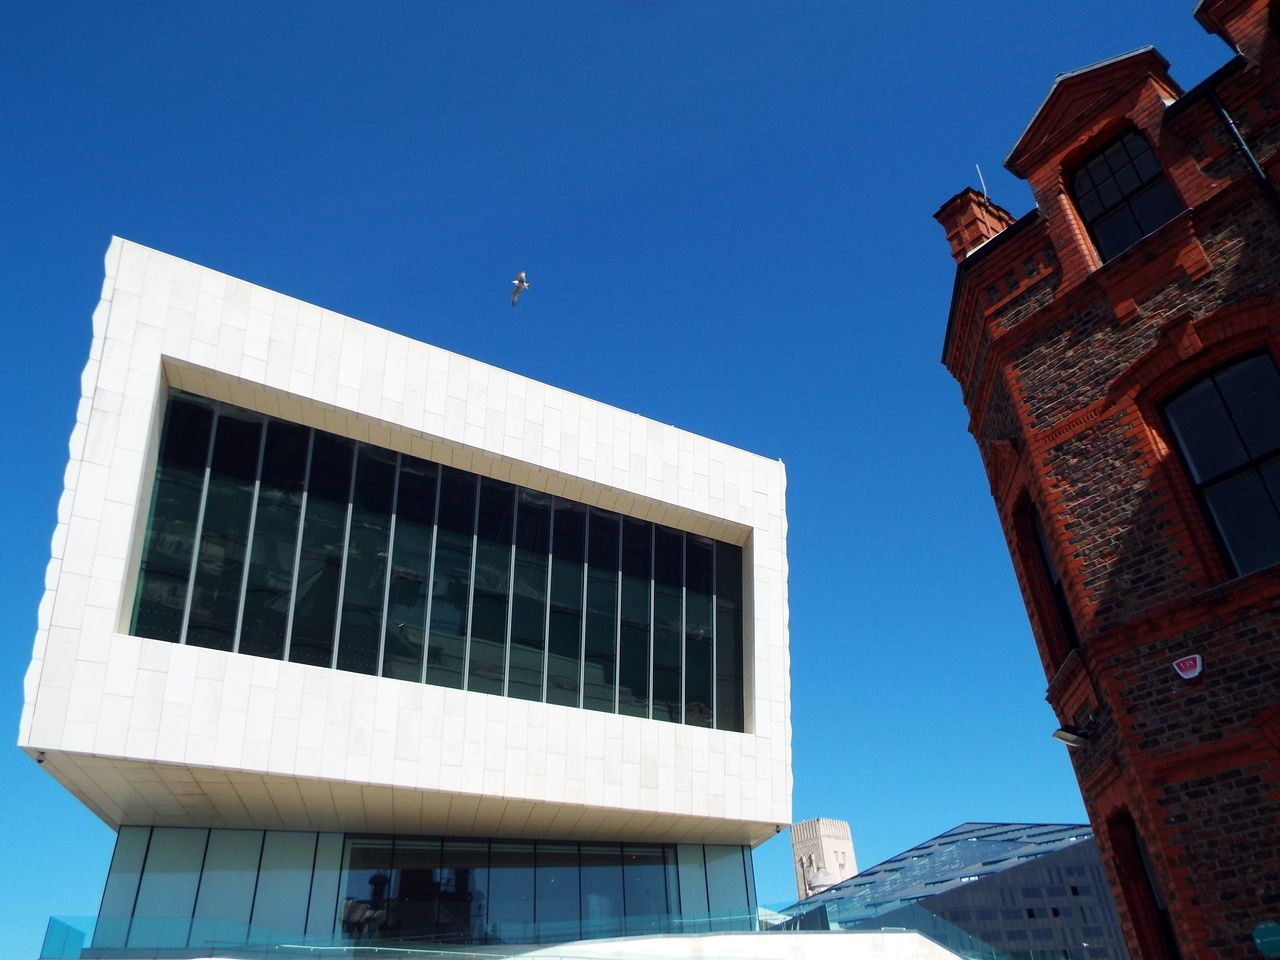 architecture, building exterior, built structure, clear sky, low angle view, day, outdoors, no people, blue, city, nature, sky